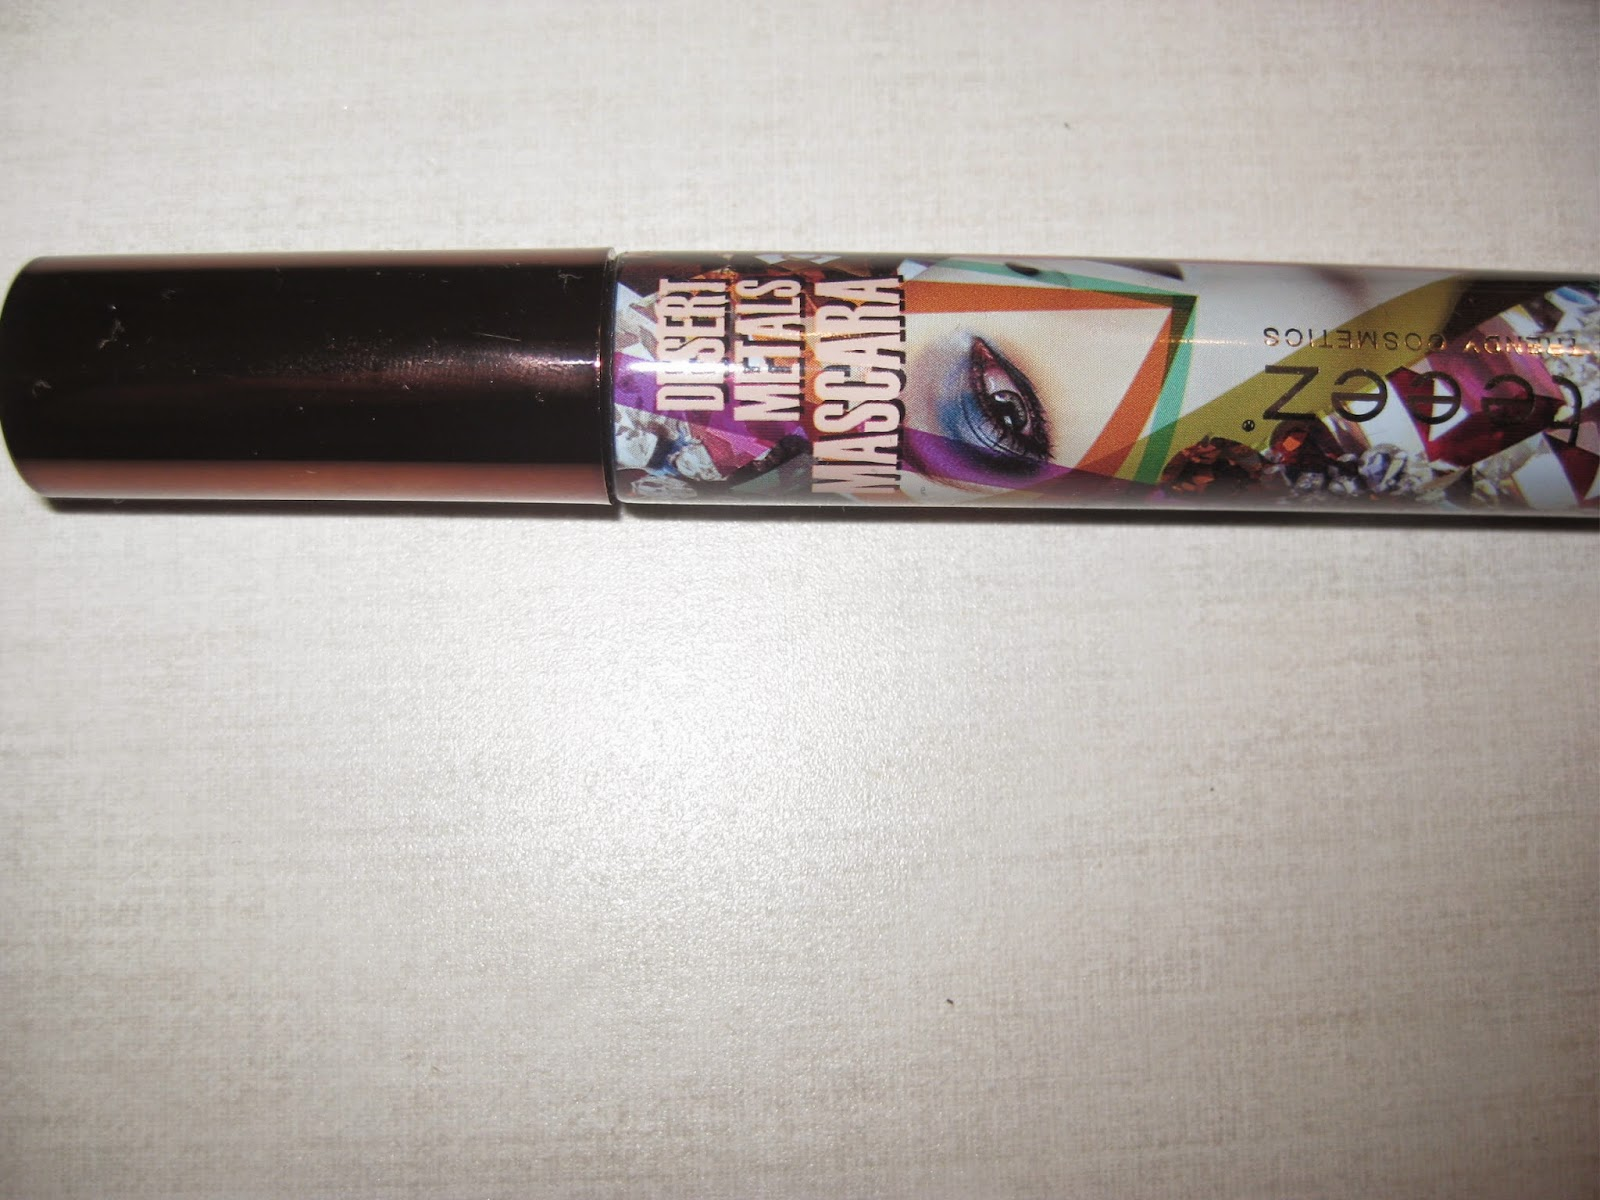 June 2014 TopBox - Review, Unboxing and Teeez Trendy Cosmetics Mascara Review!